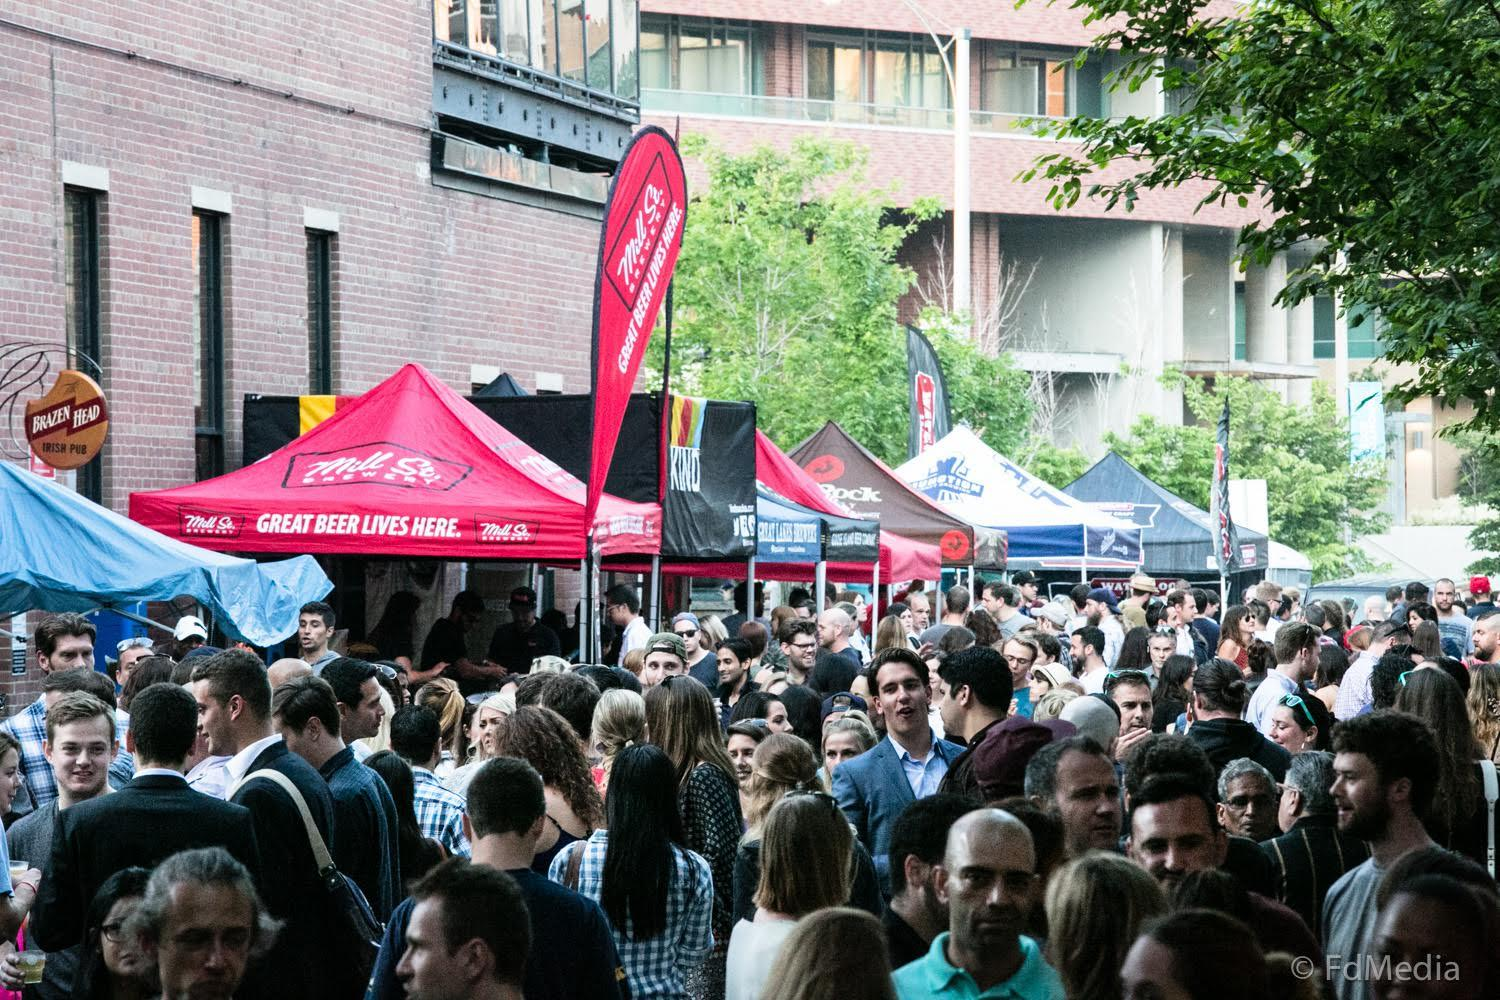 Summer Craft Beer Fest JULY 13, 2017, 5PM-10PM <h3>Liberty Village - Behind Brazen Head (171 E Liberty St, Toronto, ON M6K 3P6)</h3>